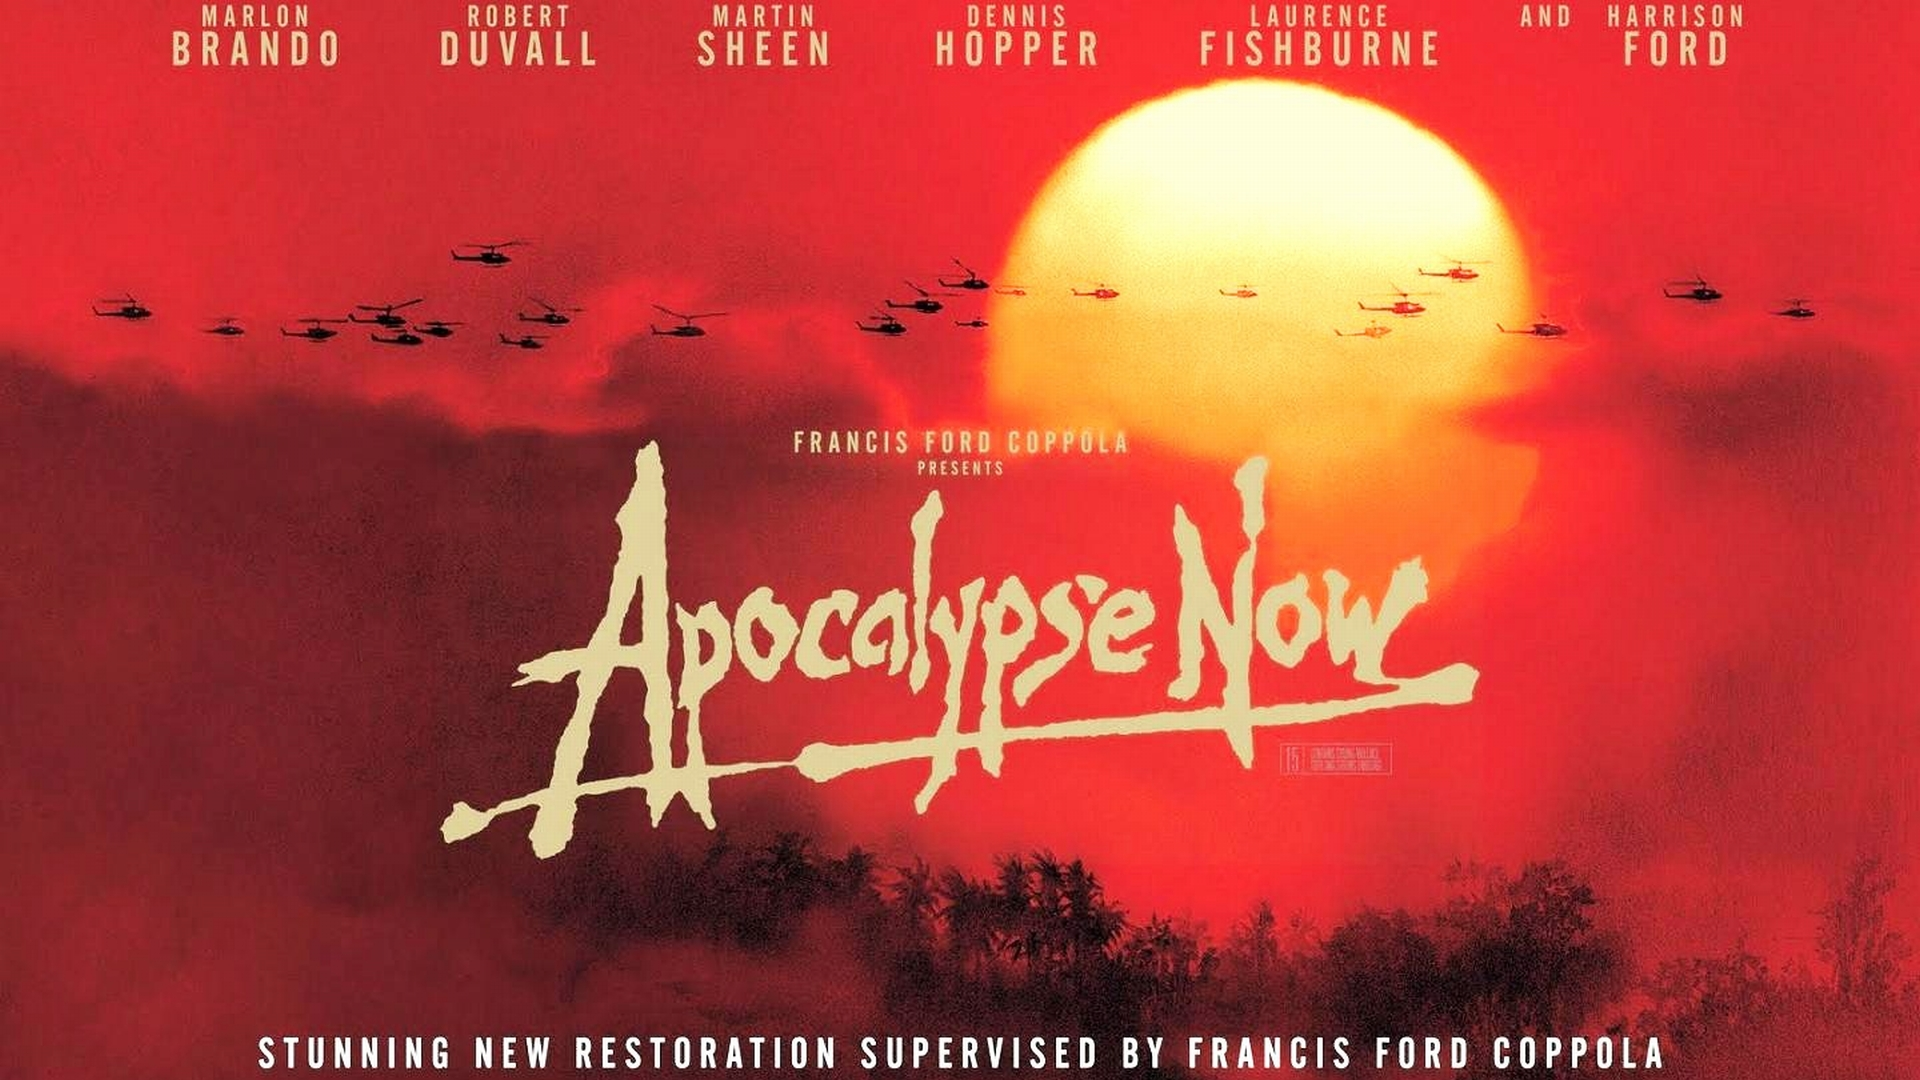 eloquent editing a movie analysis of apocalypse now vc voices